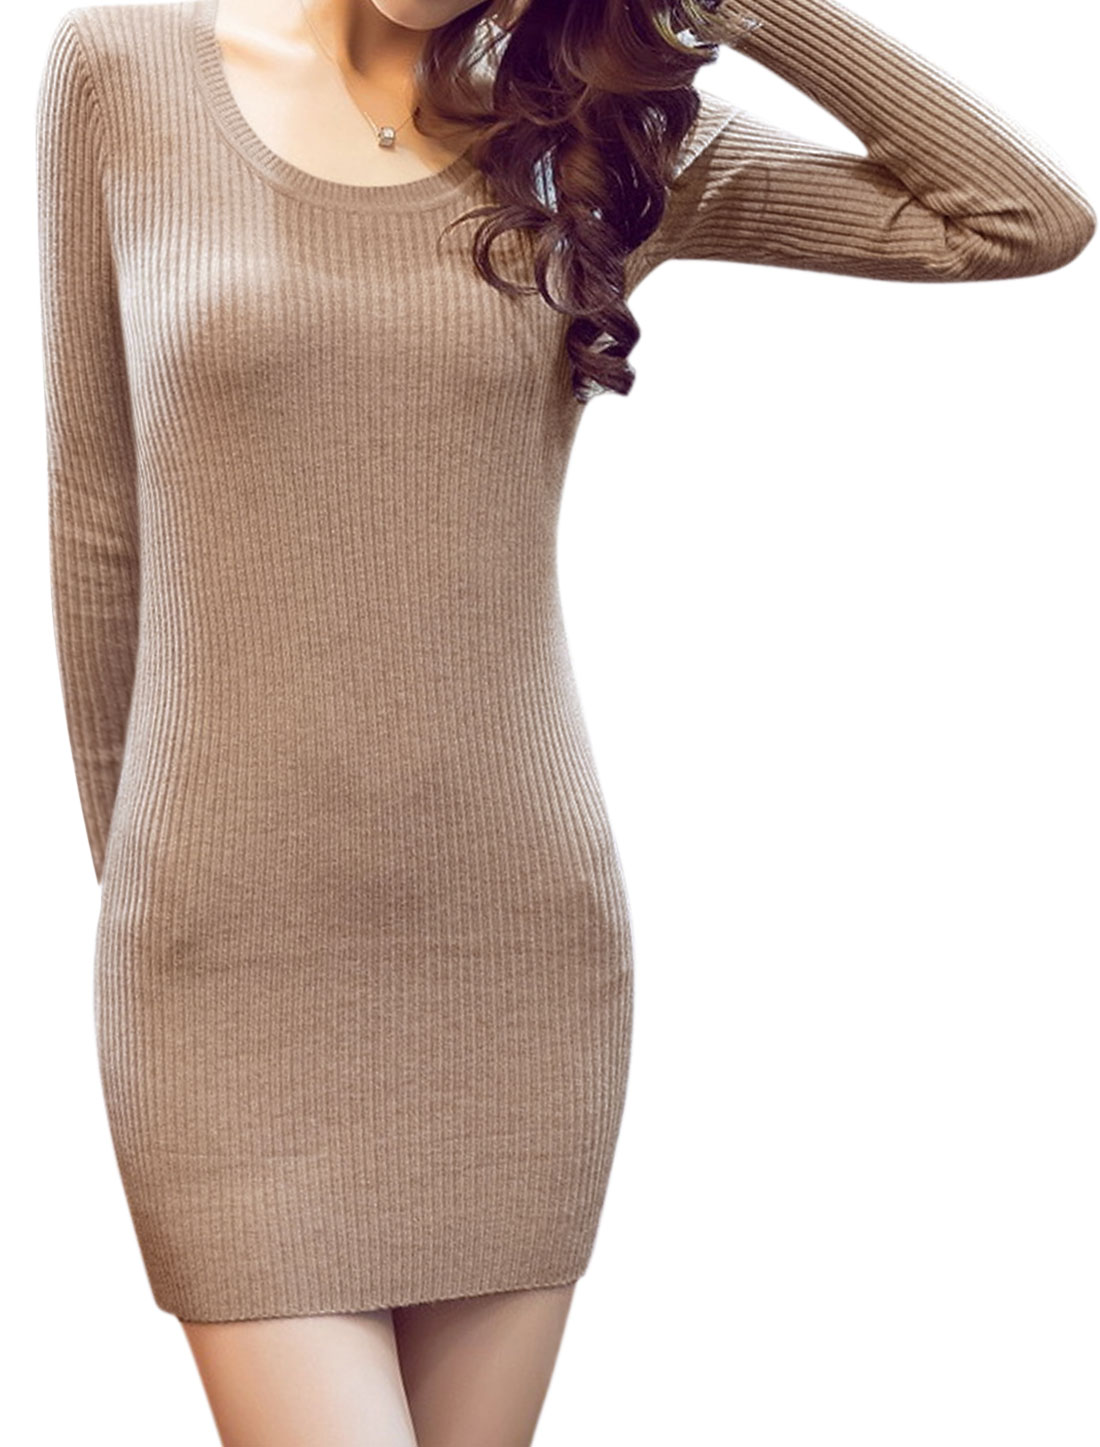 Women Round Neck Long Sleeves Knit Mini Bodycon Dress Beige XS